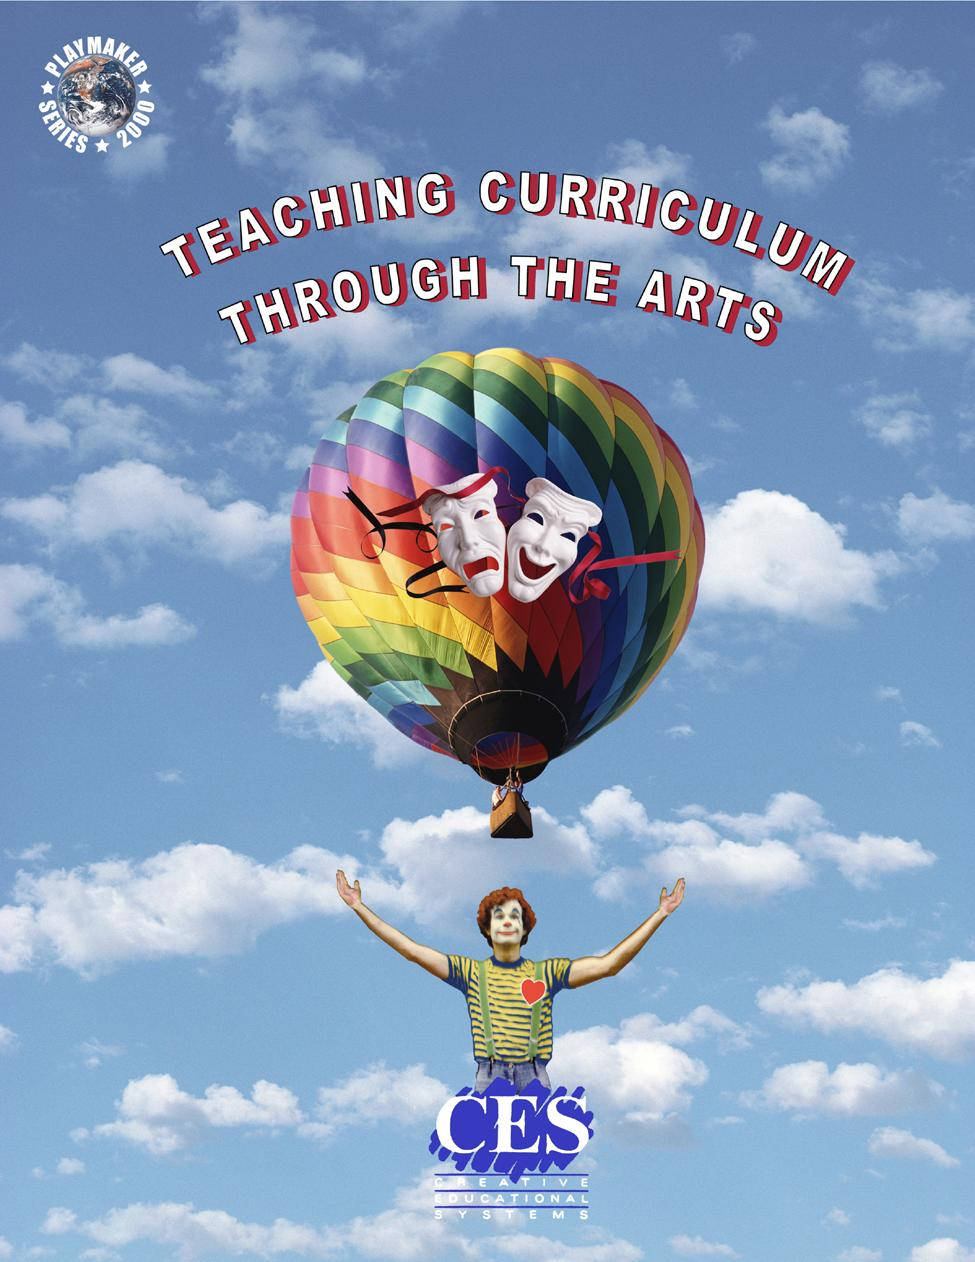 arts-in-education teachers manual